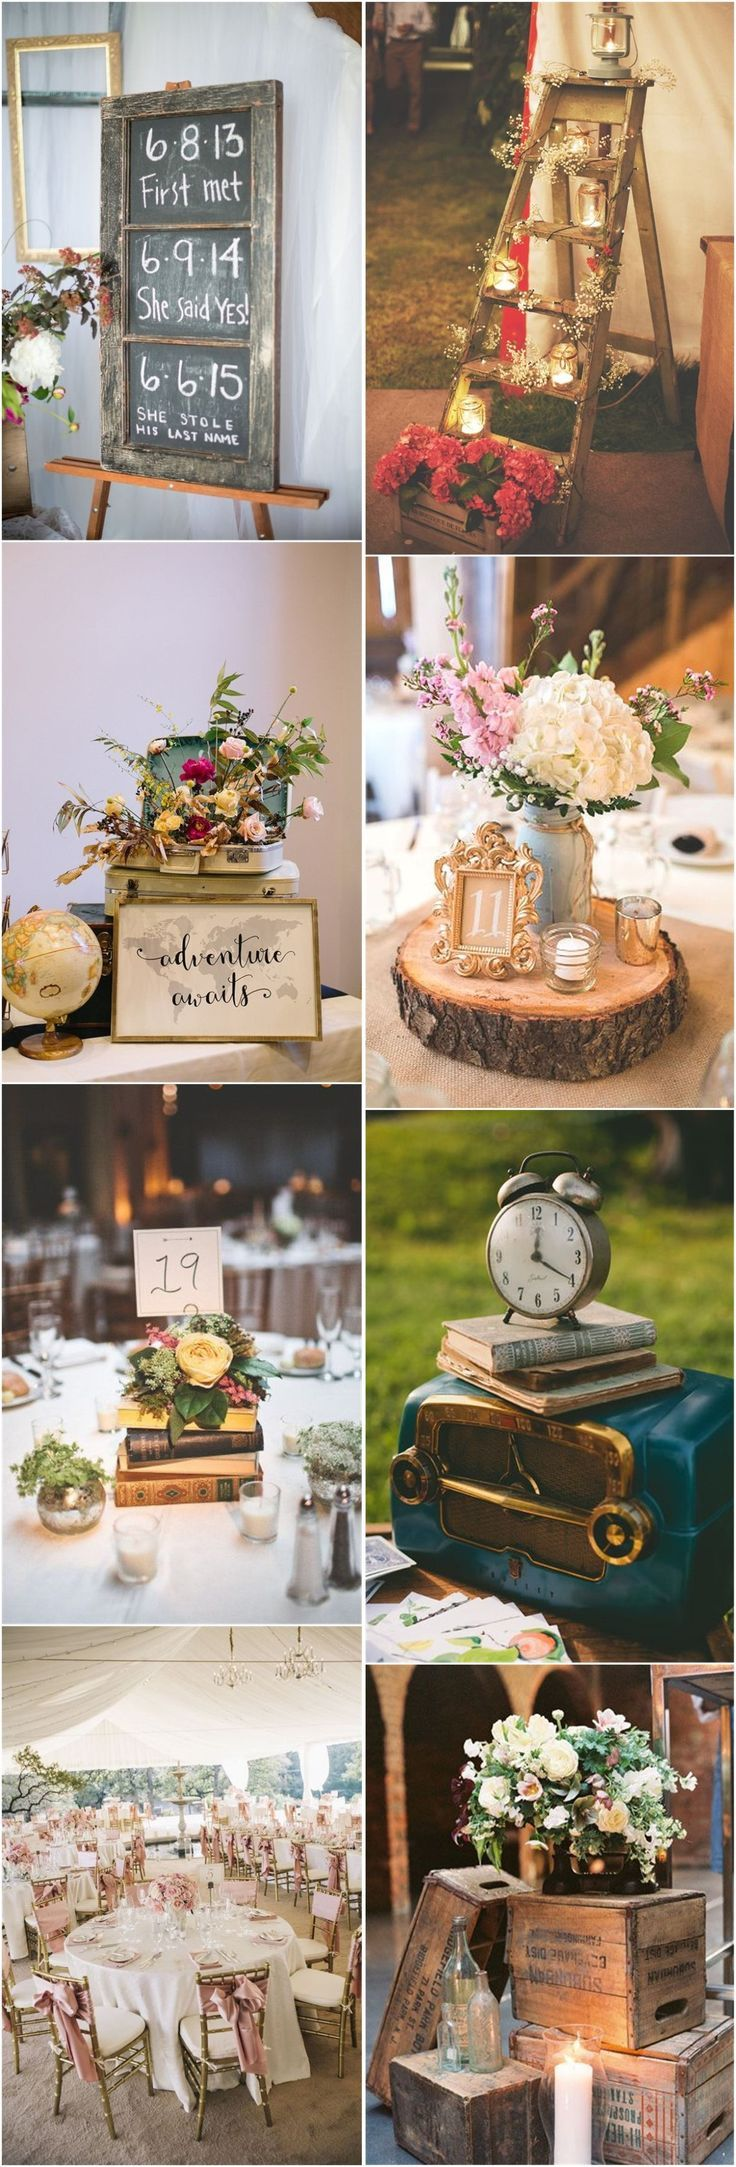 21 Shabby Chic Vintage Wedding Ideas You Cannot Resist! - WeddingInclude | Shabby  chic wedding decor, Vintage chic wedding, Shabby chic decor